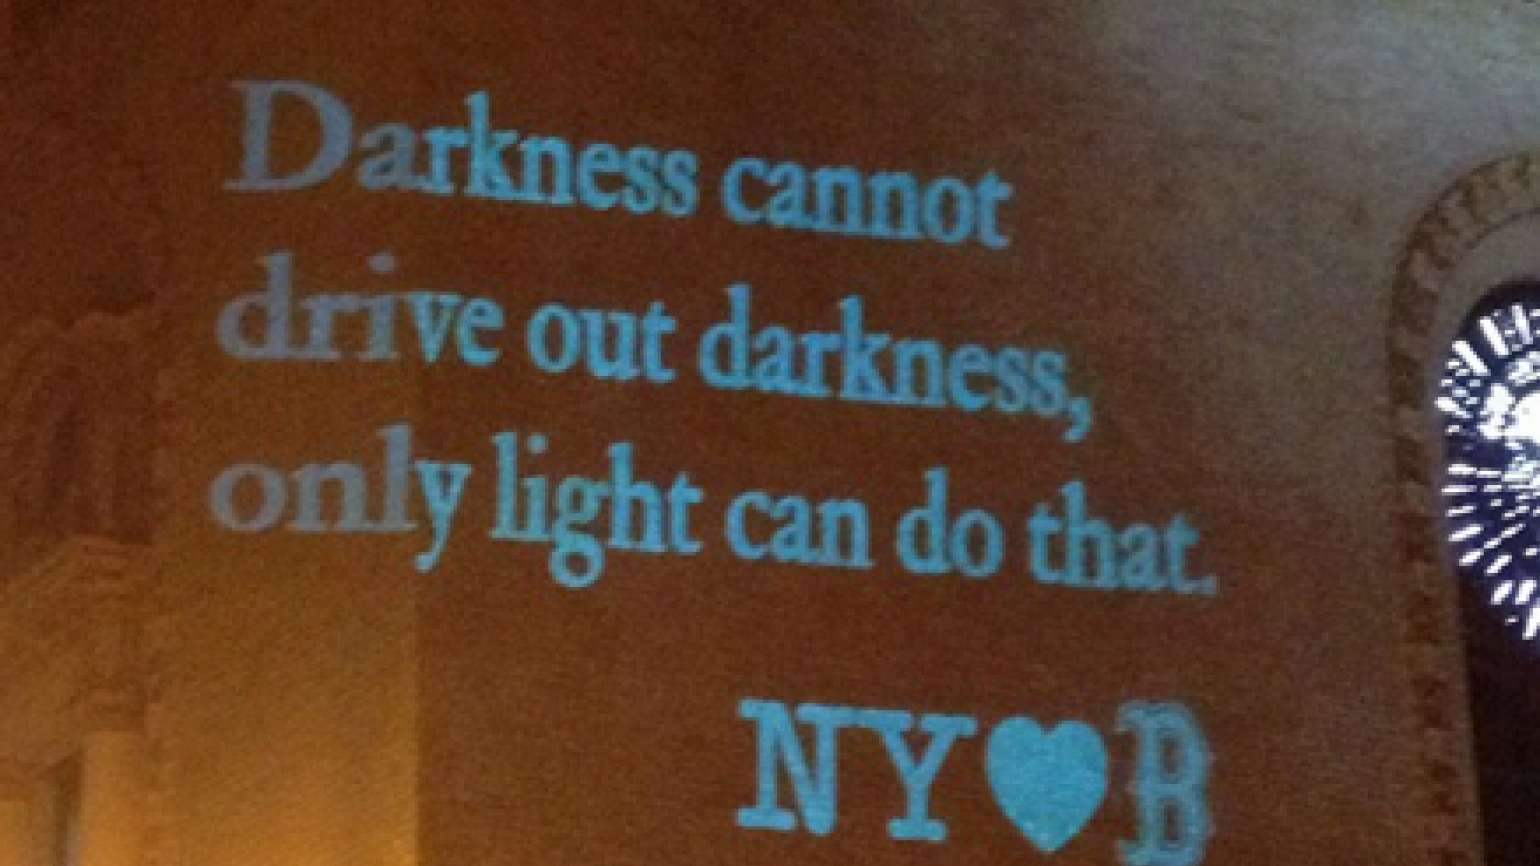 Message from New York after the Boston Marathon bombing